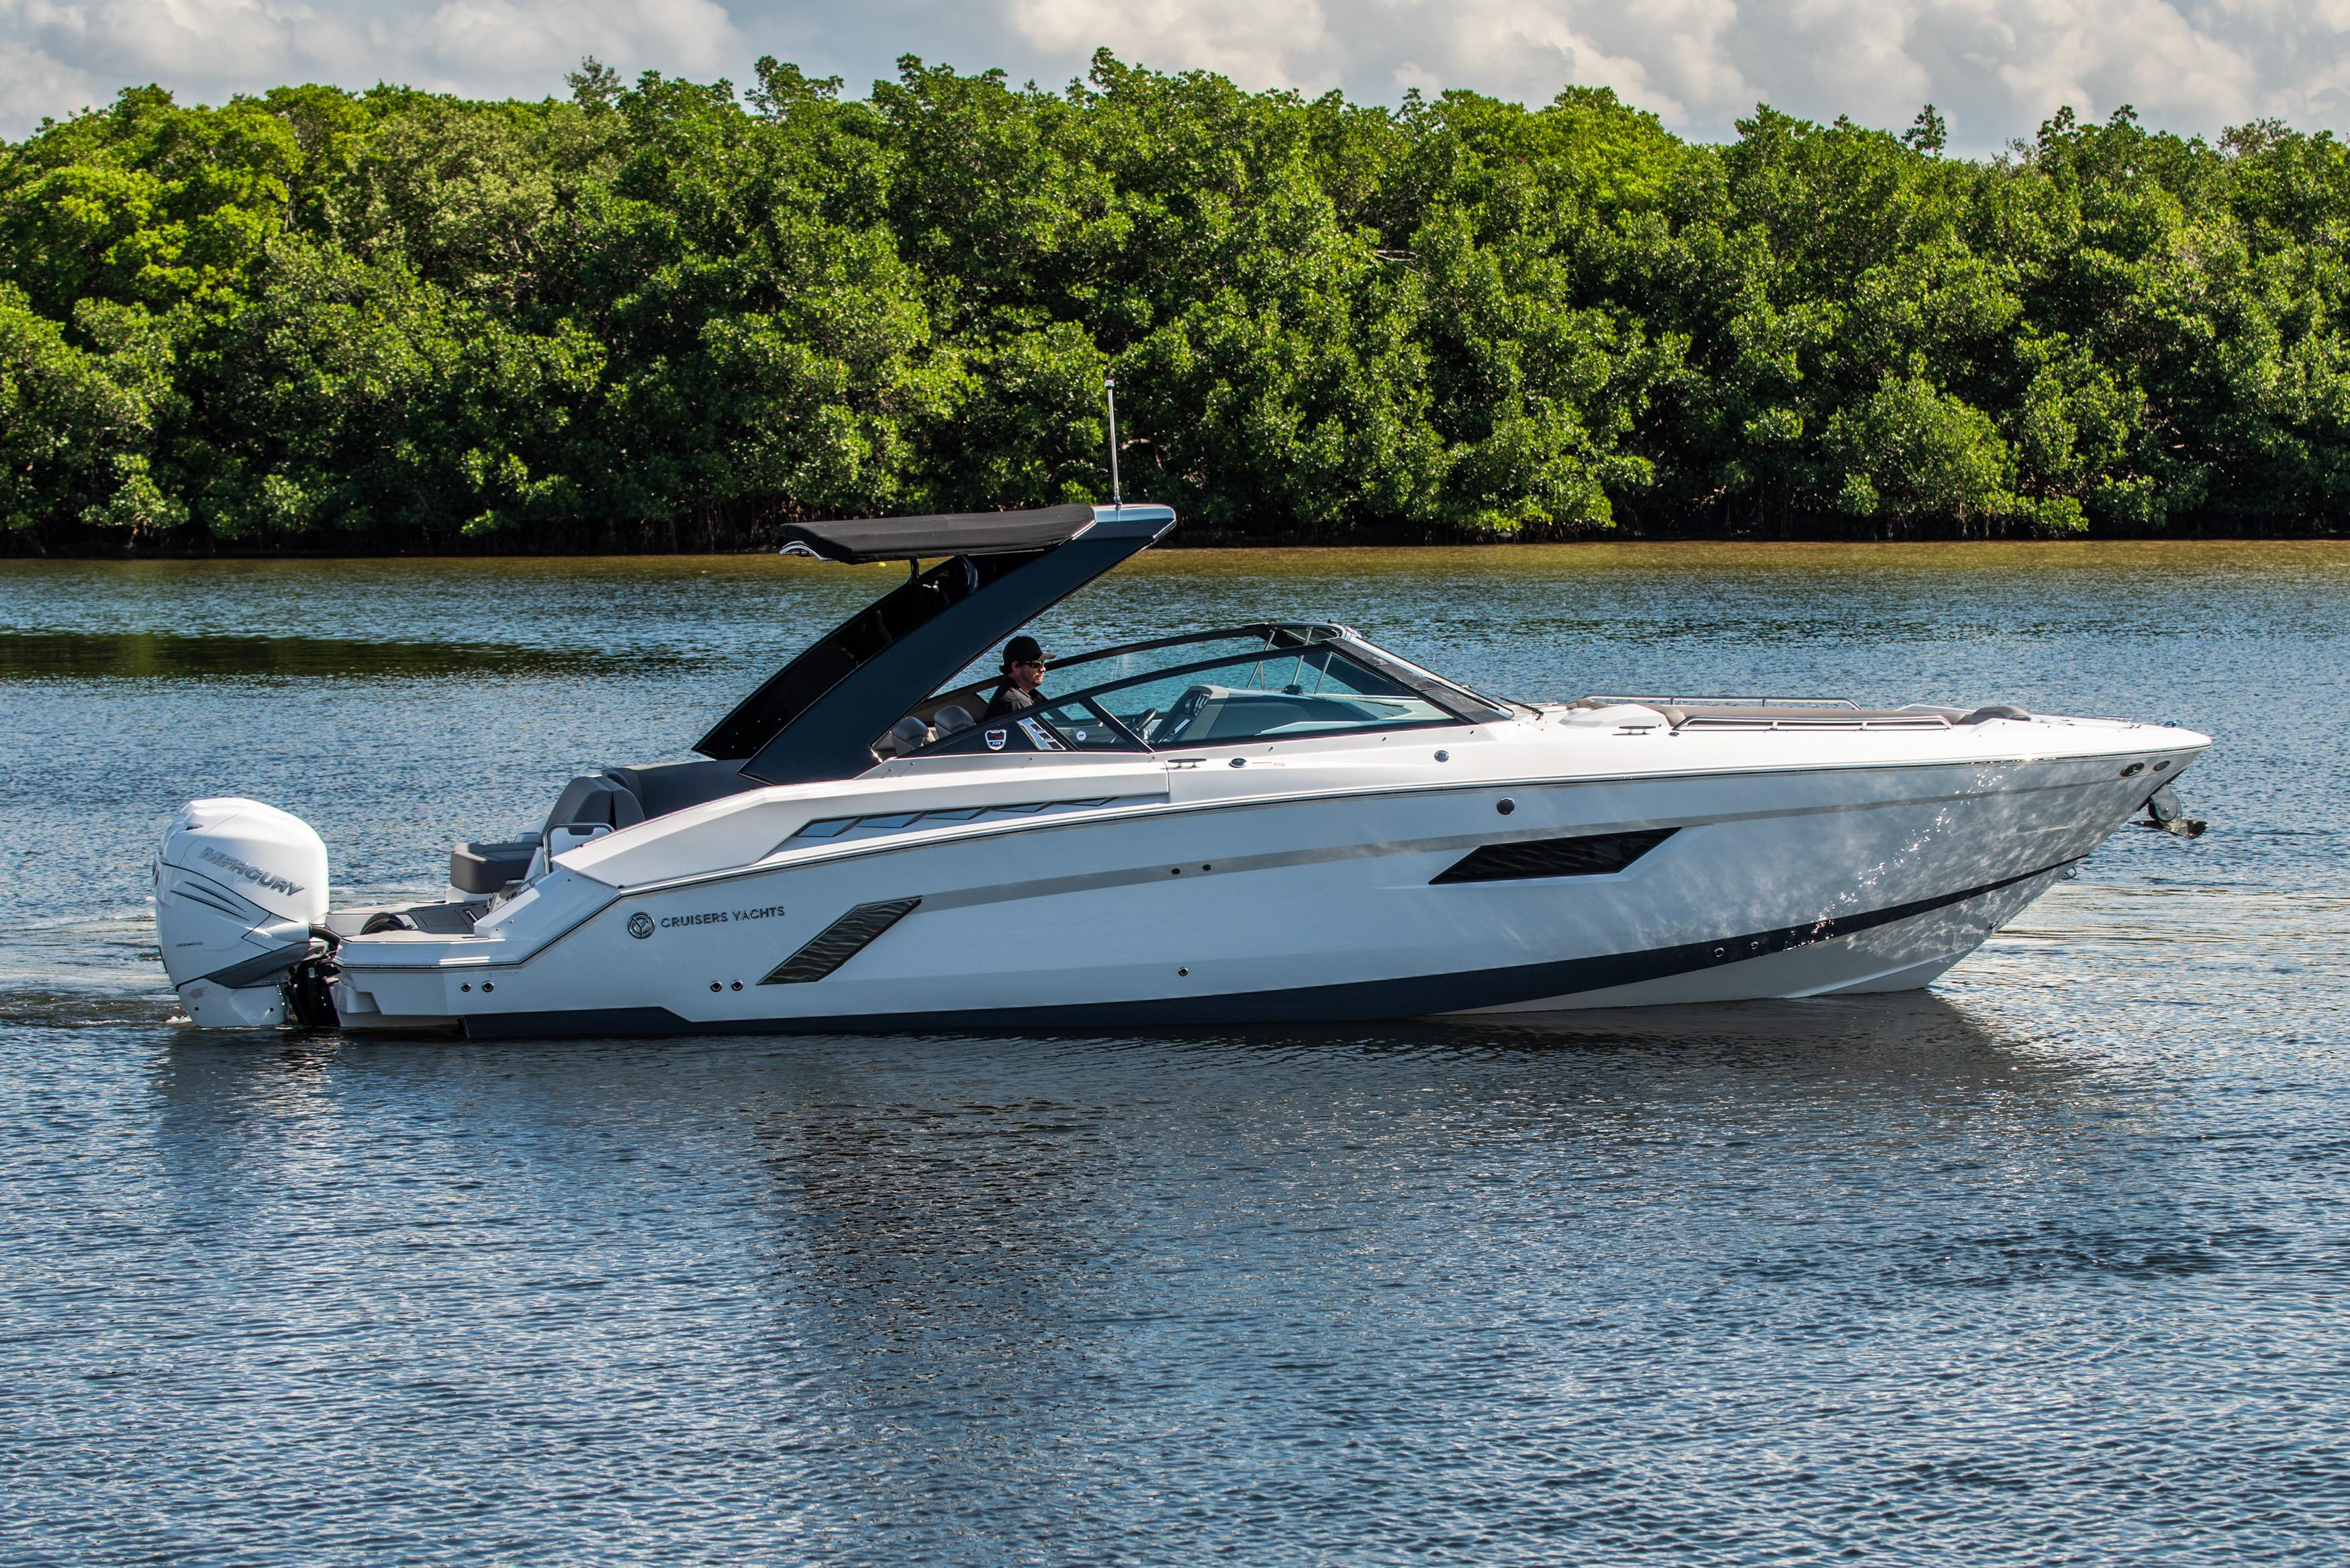 2019 Cruisers 338 Bowrider Power Boat For Sale Www Yachtworld Com